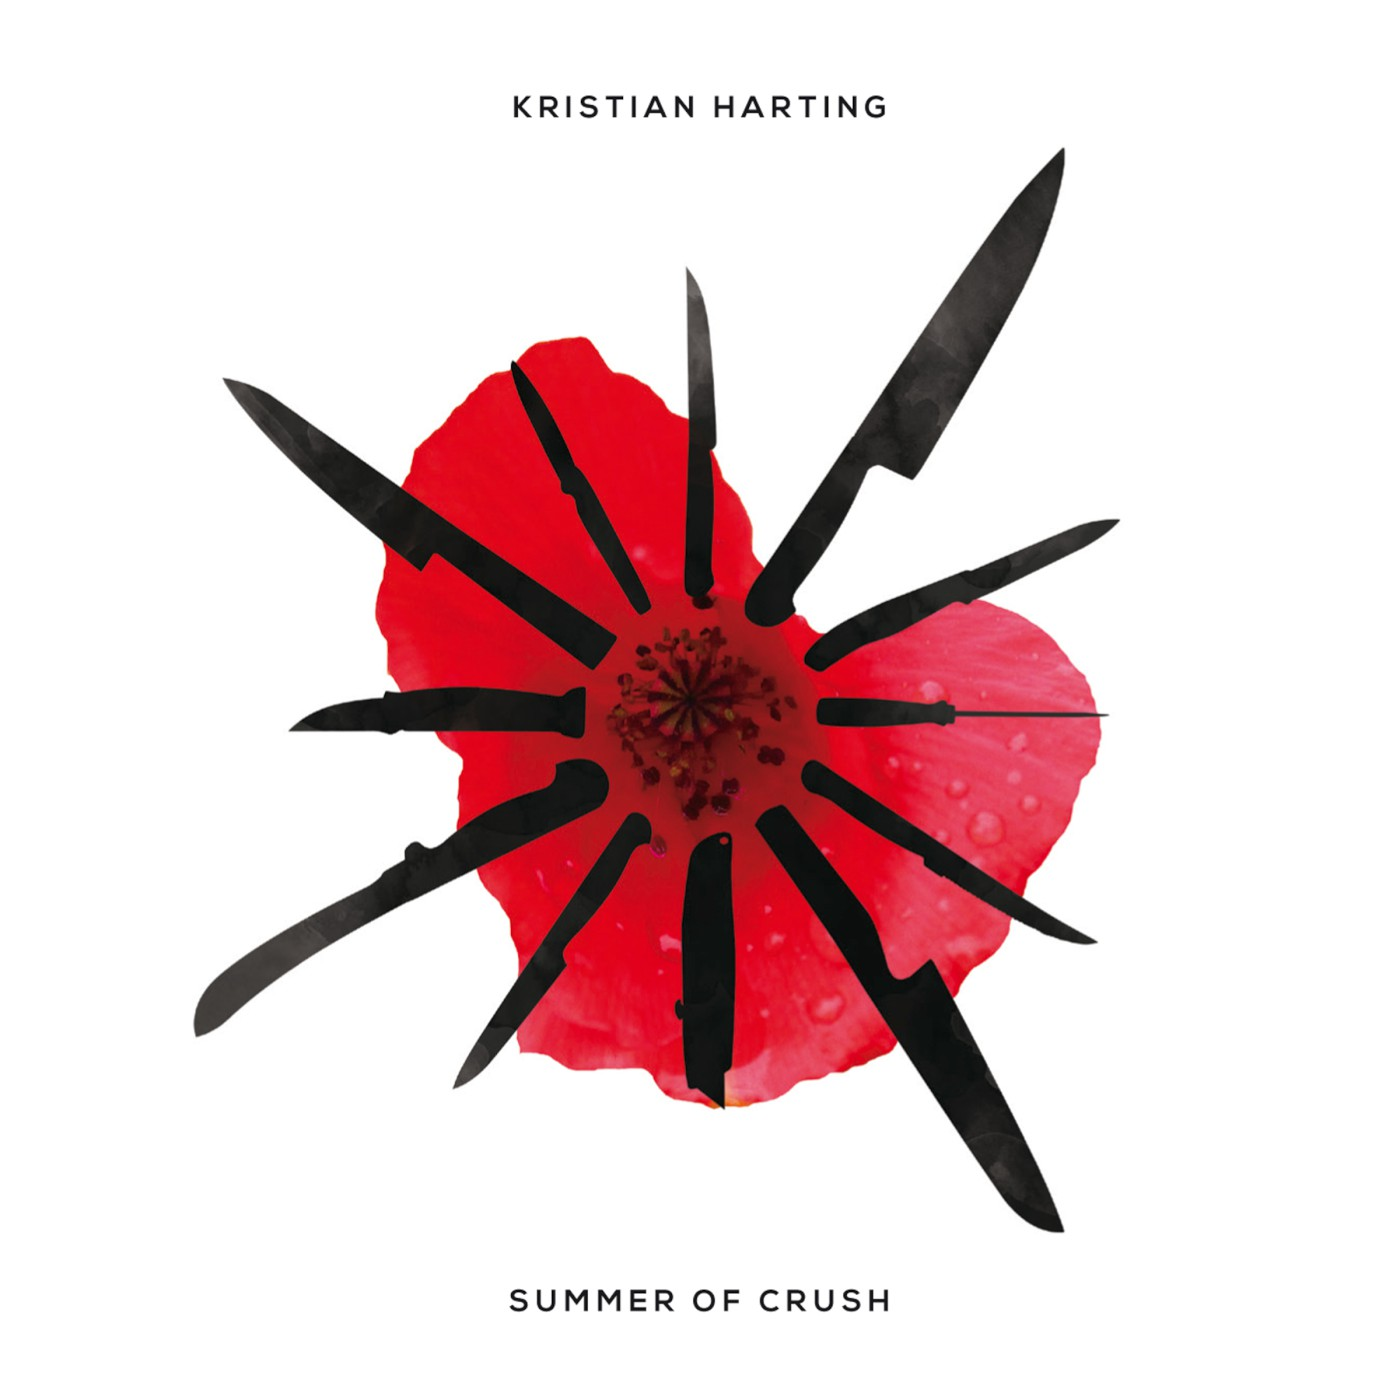 kristian harting summer of crush